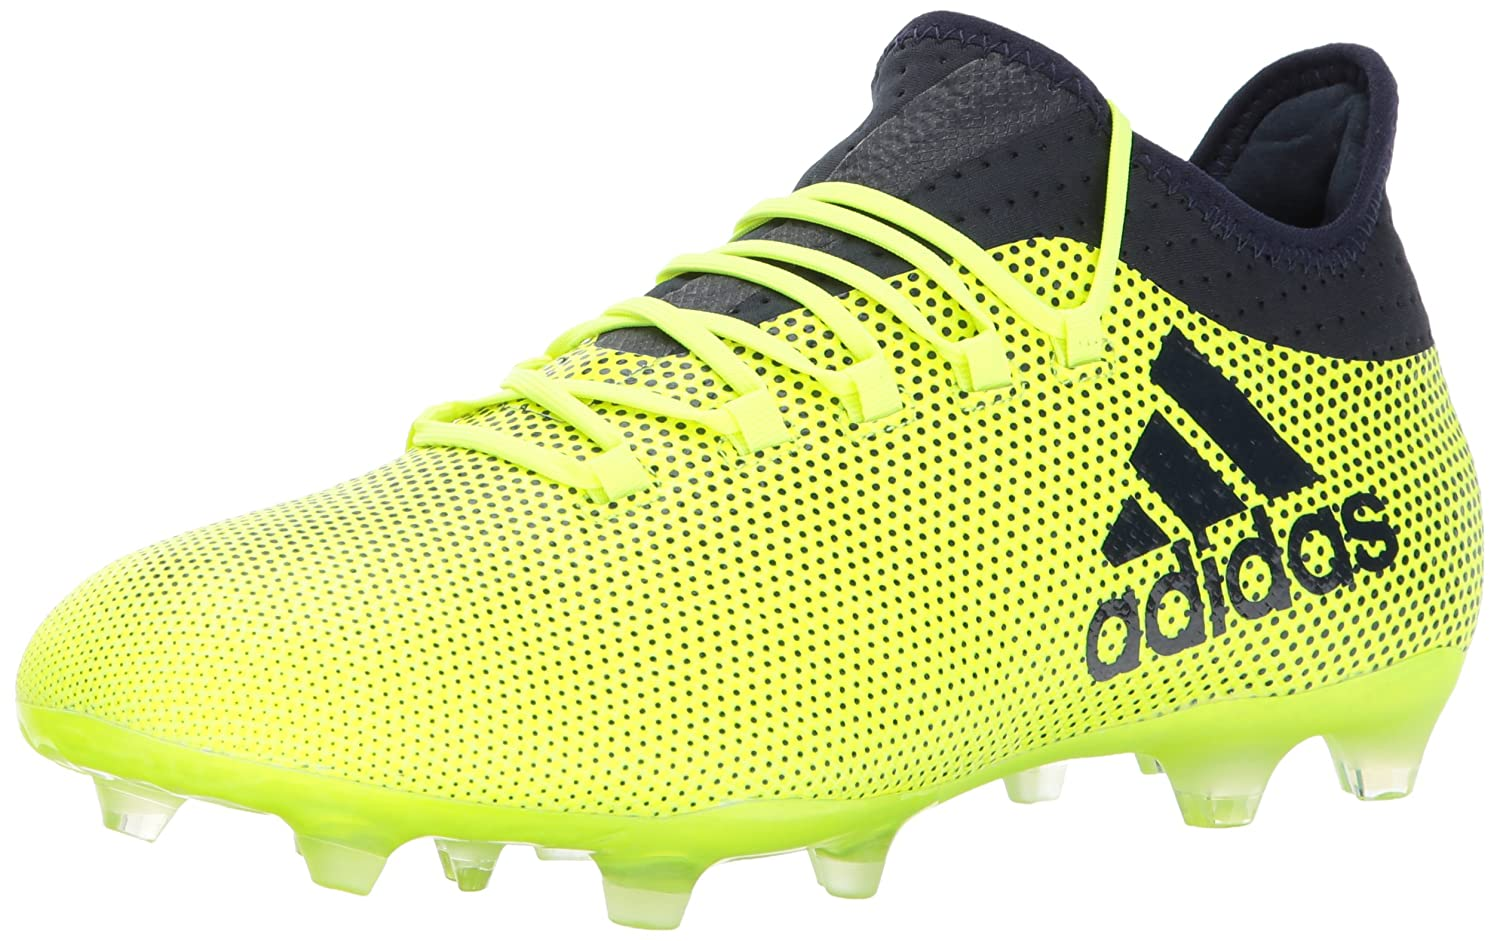 adidas Performance メンズ X 17.2 FG B01N4DCLL8 9.5 D(M) US|Solar Yellow/Legend Ink/Legend Ink Solar Yellow/Legend Ink/Legend Ink 9.5 D(M) US